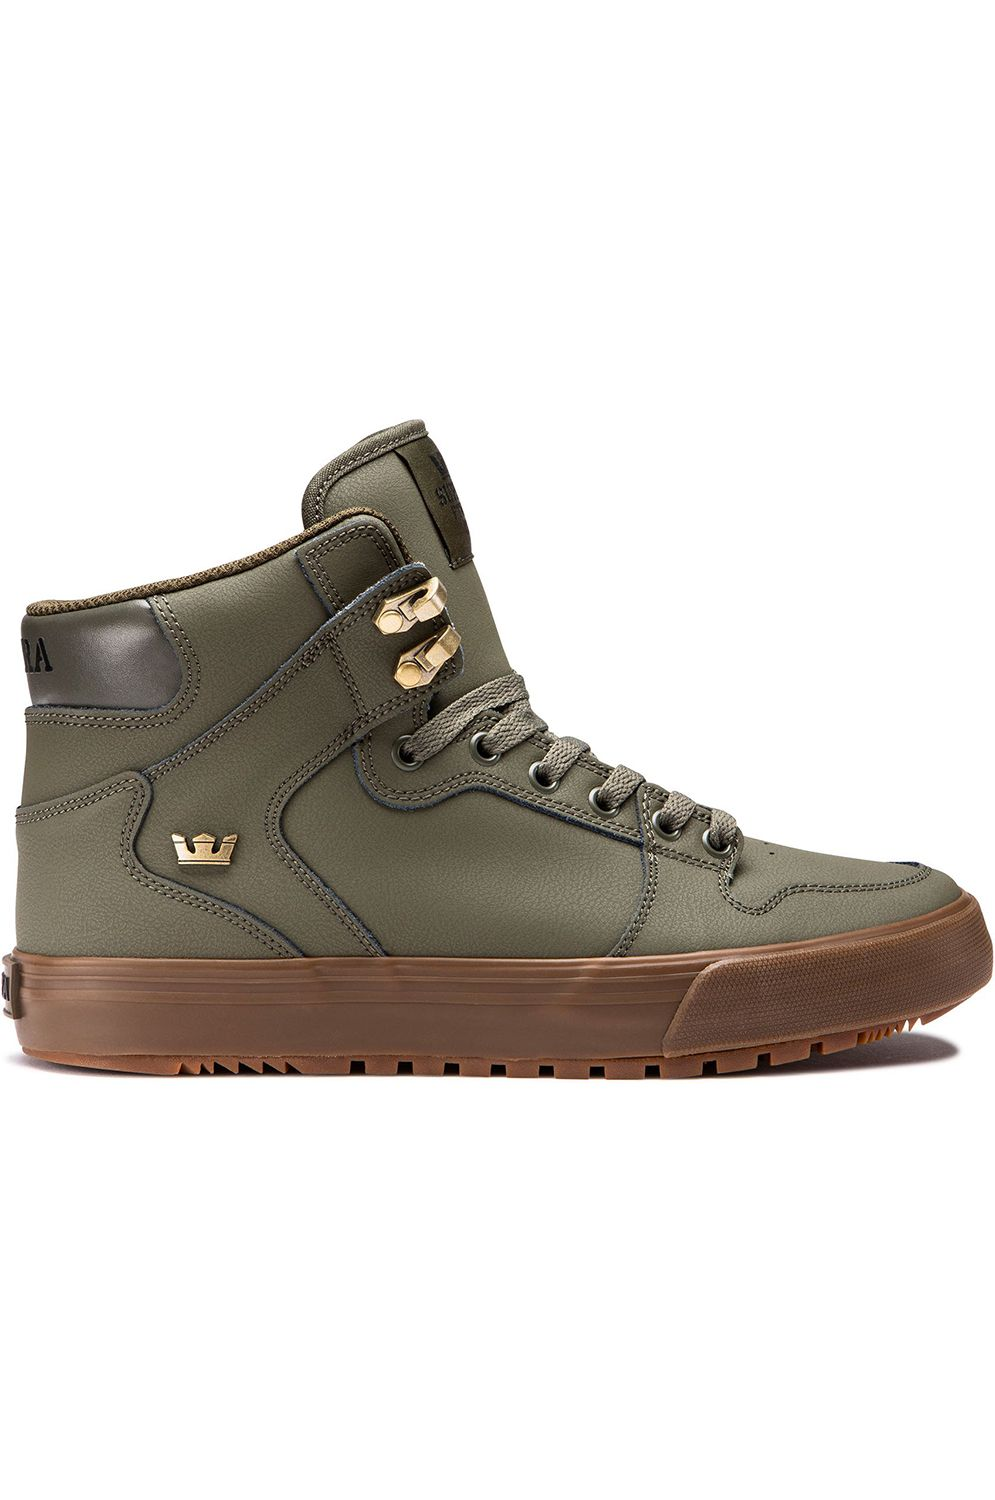 Supra Shoes VAIDER CW Olive